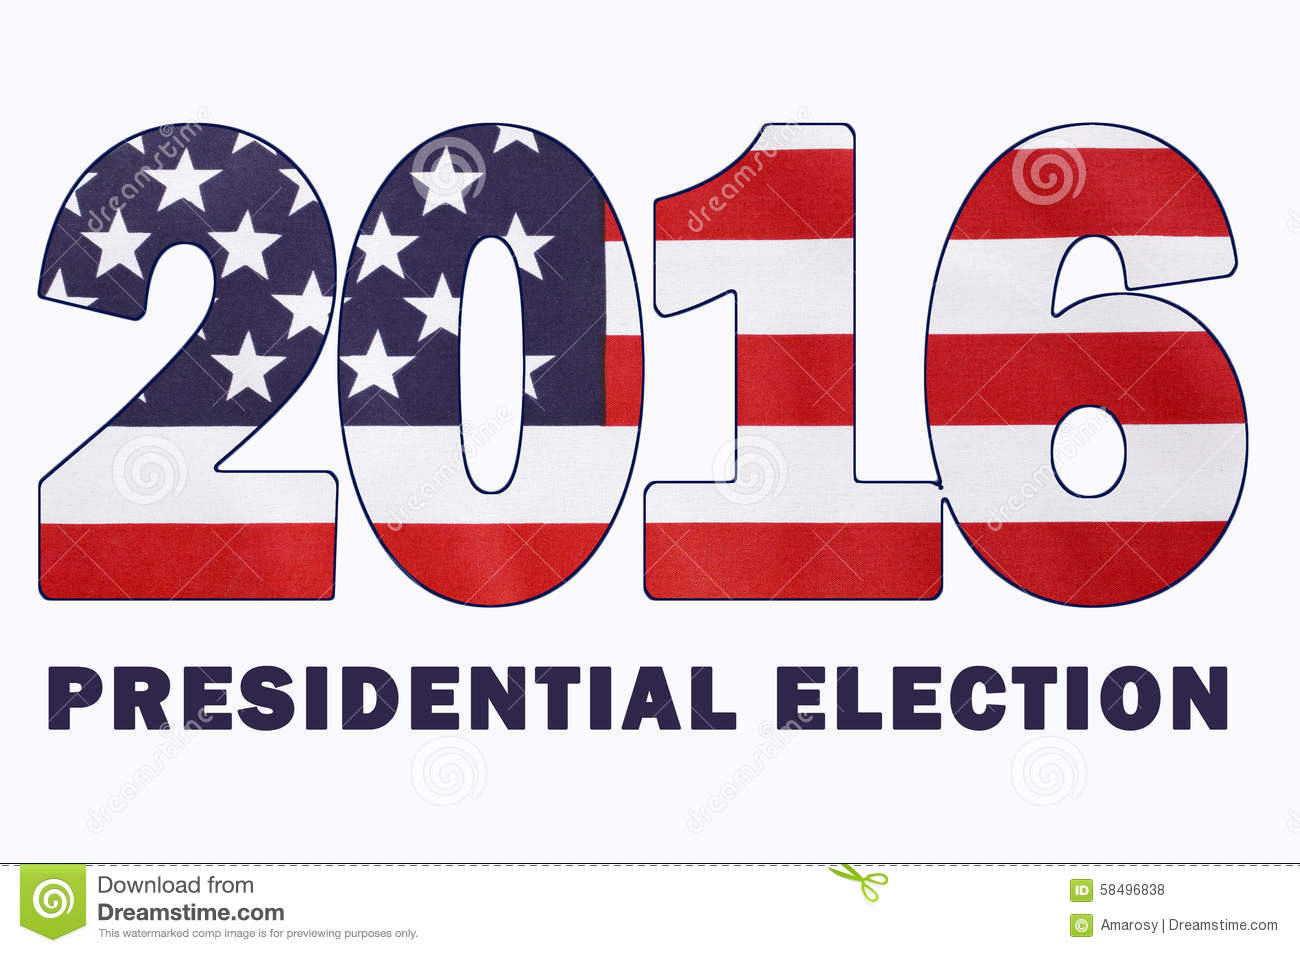 presidential election in us